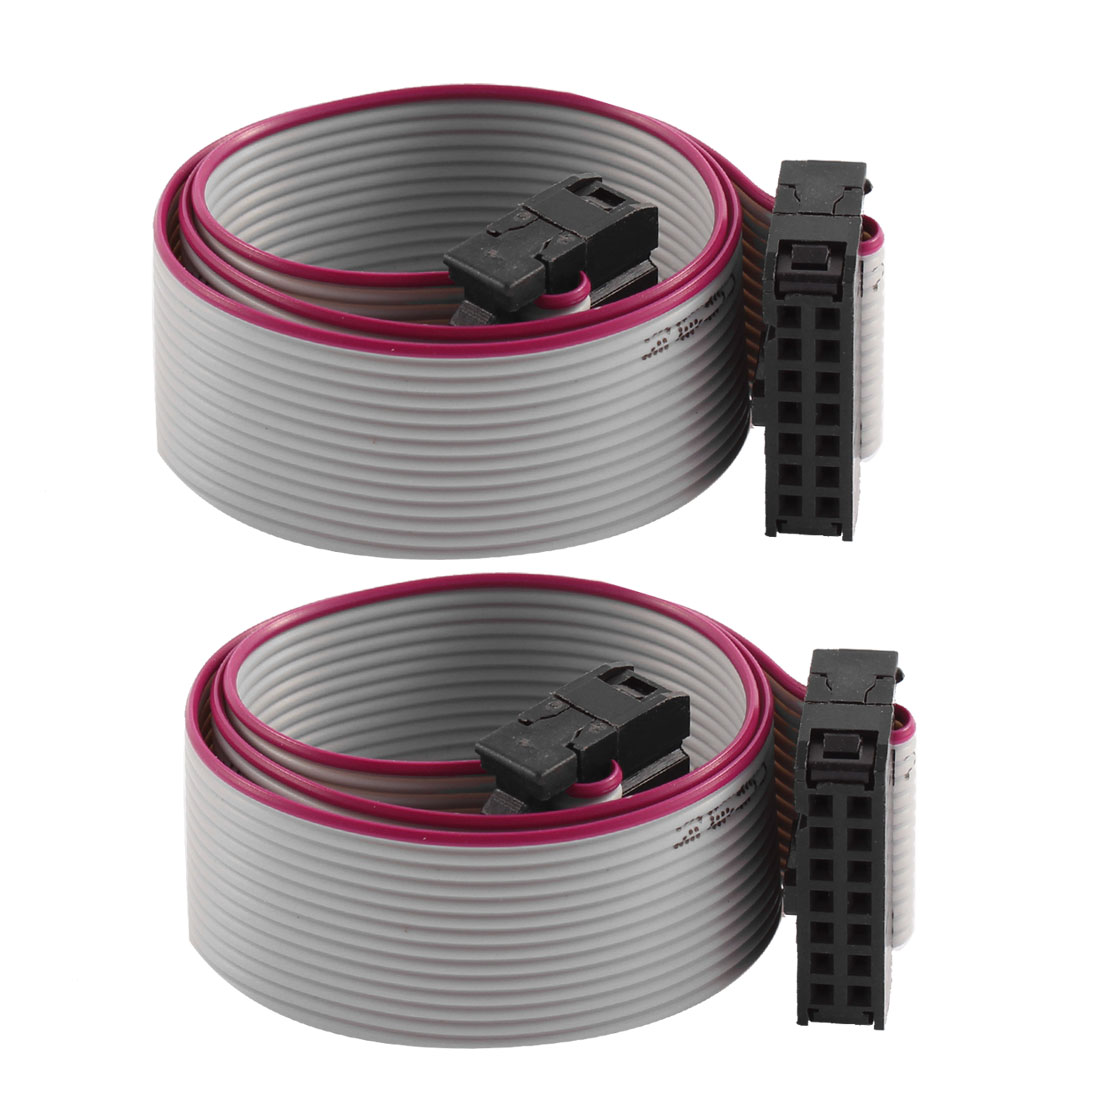 2 Pcs FC-14P IDC 14-Pin F/F Hard Drive Data Extension Wire Flat Ribbon Cable Connector 30cm Long for Motherboard